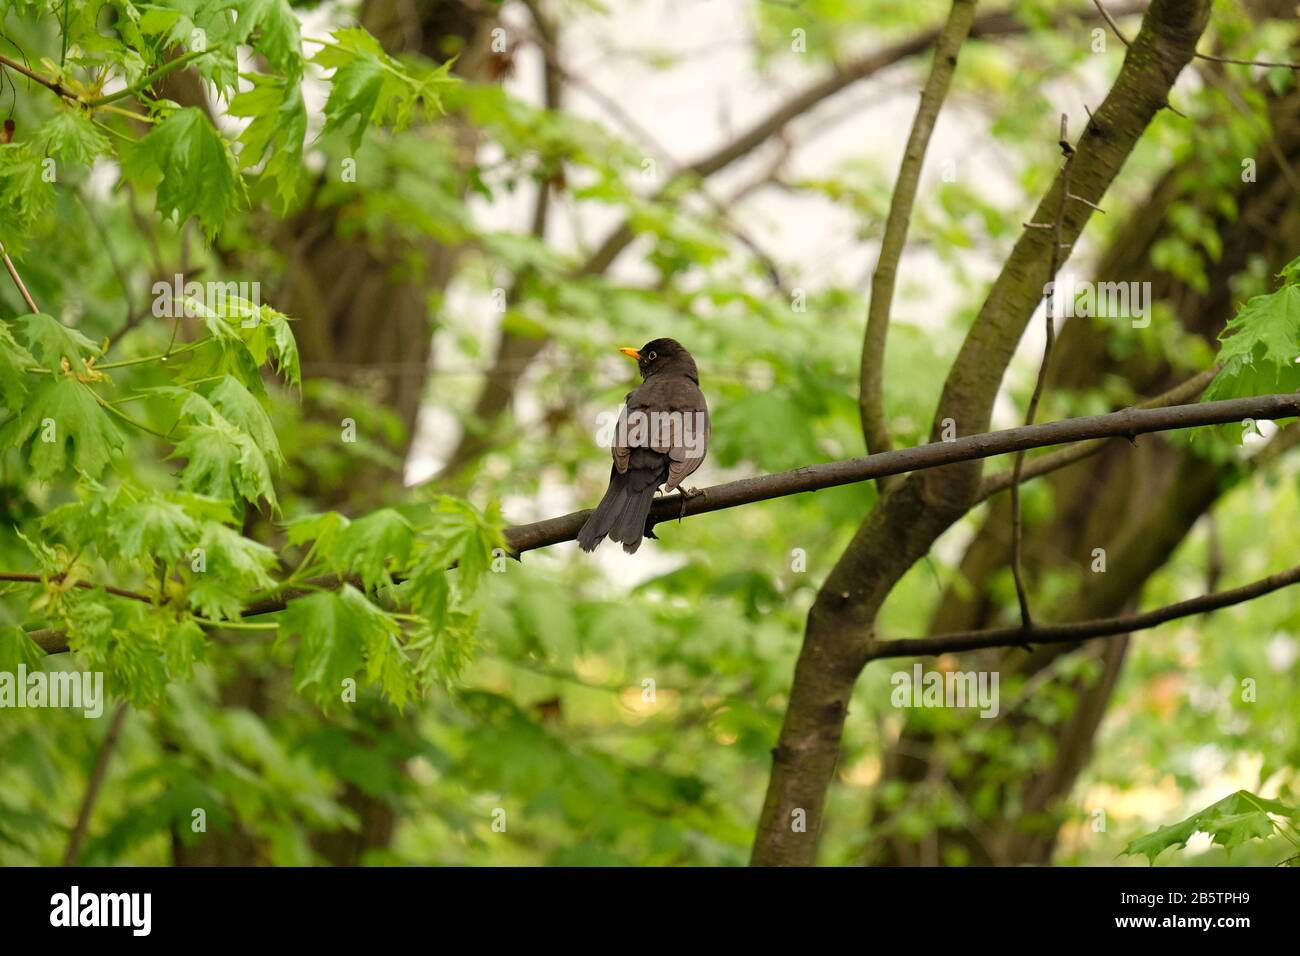 Common blackbird (Turdus merula) from behind head turned profile, on a branch amongst new green spring foliage, Letna park;  Prague Czechia Stock Photo